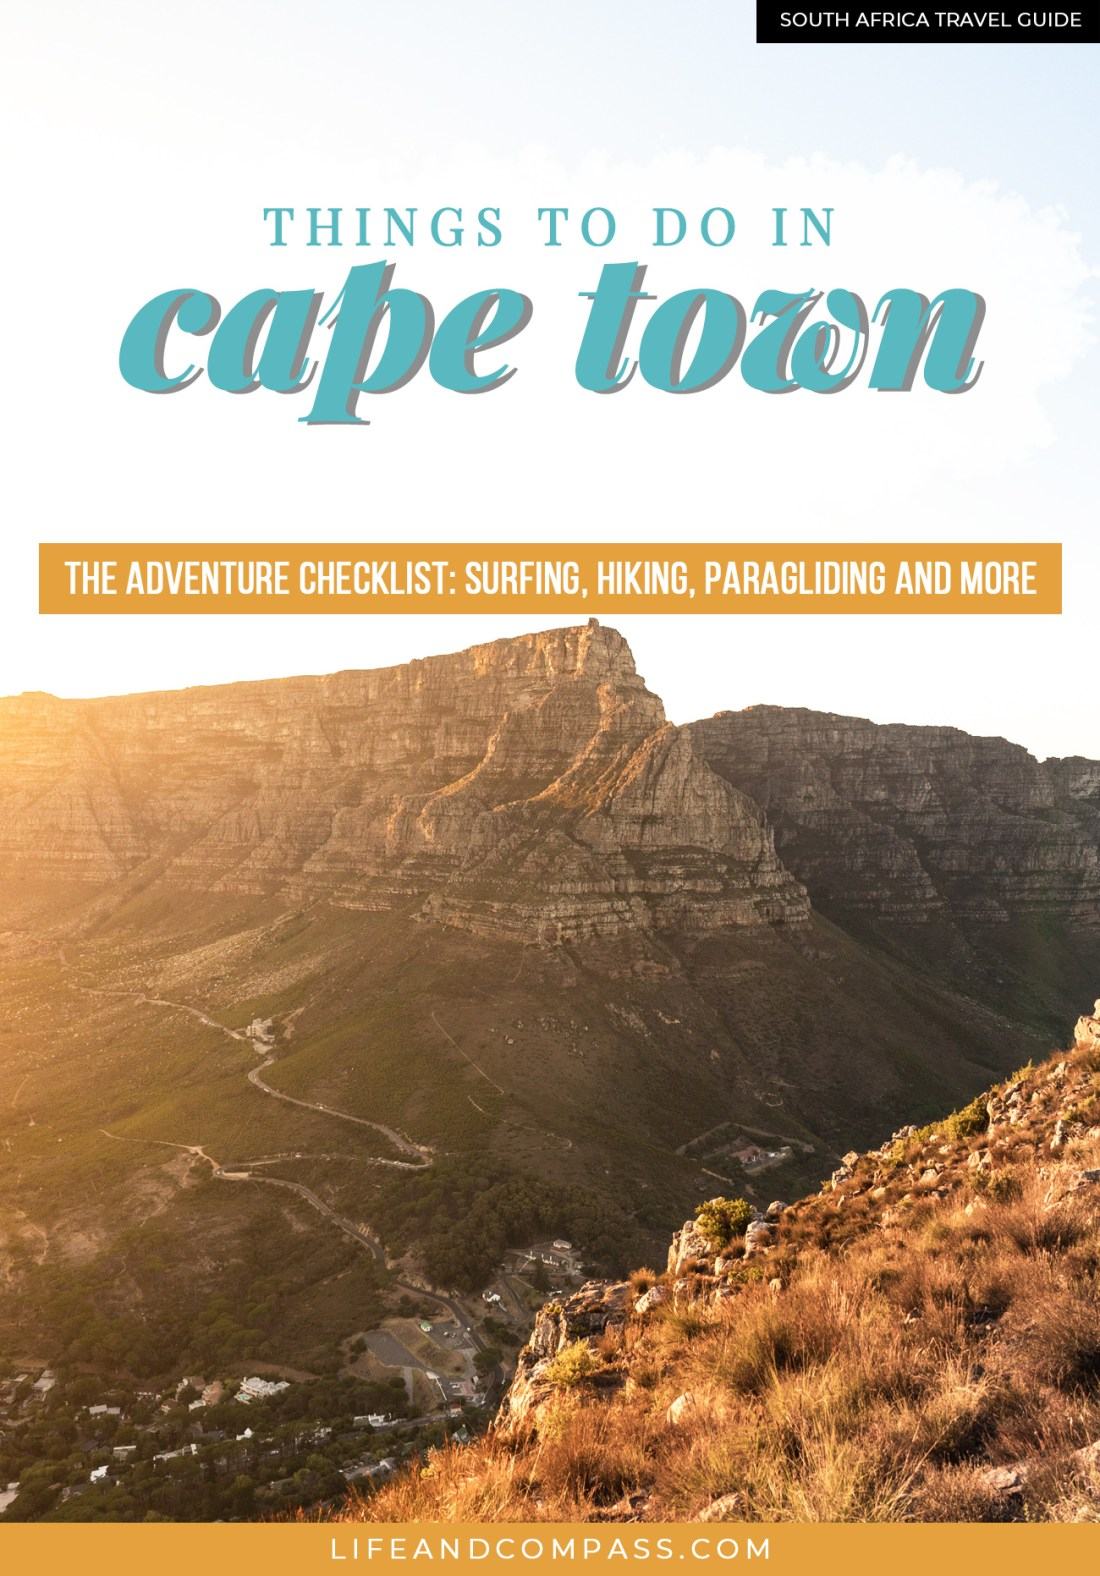 There's no shortage of adventure activities in Cape Town to enjoy and having visited 4 times, there's still something new to discover!